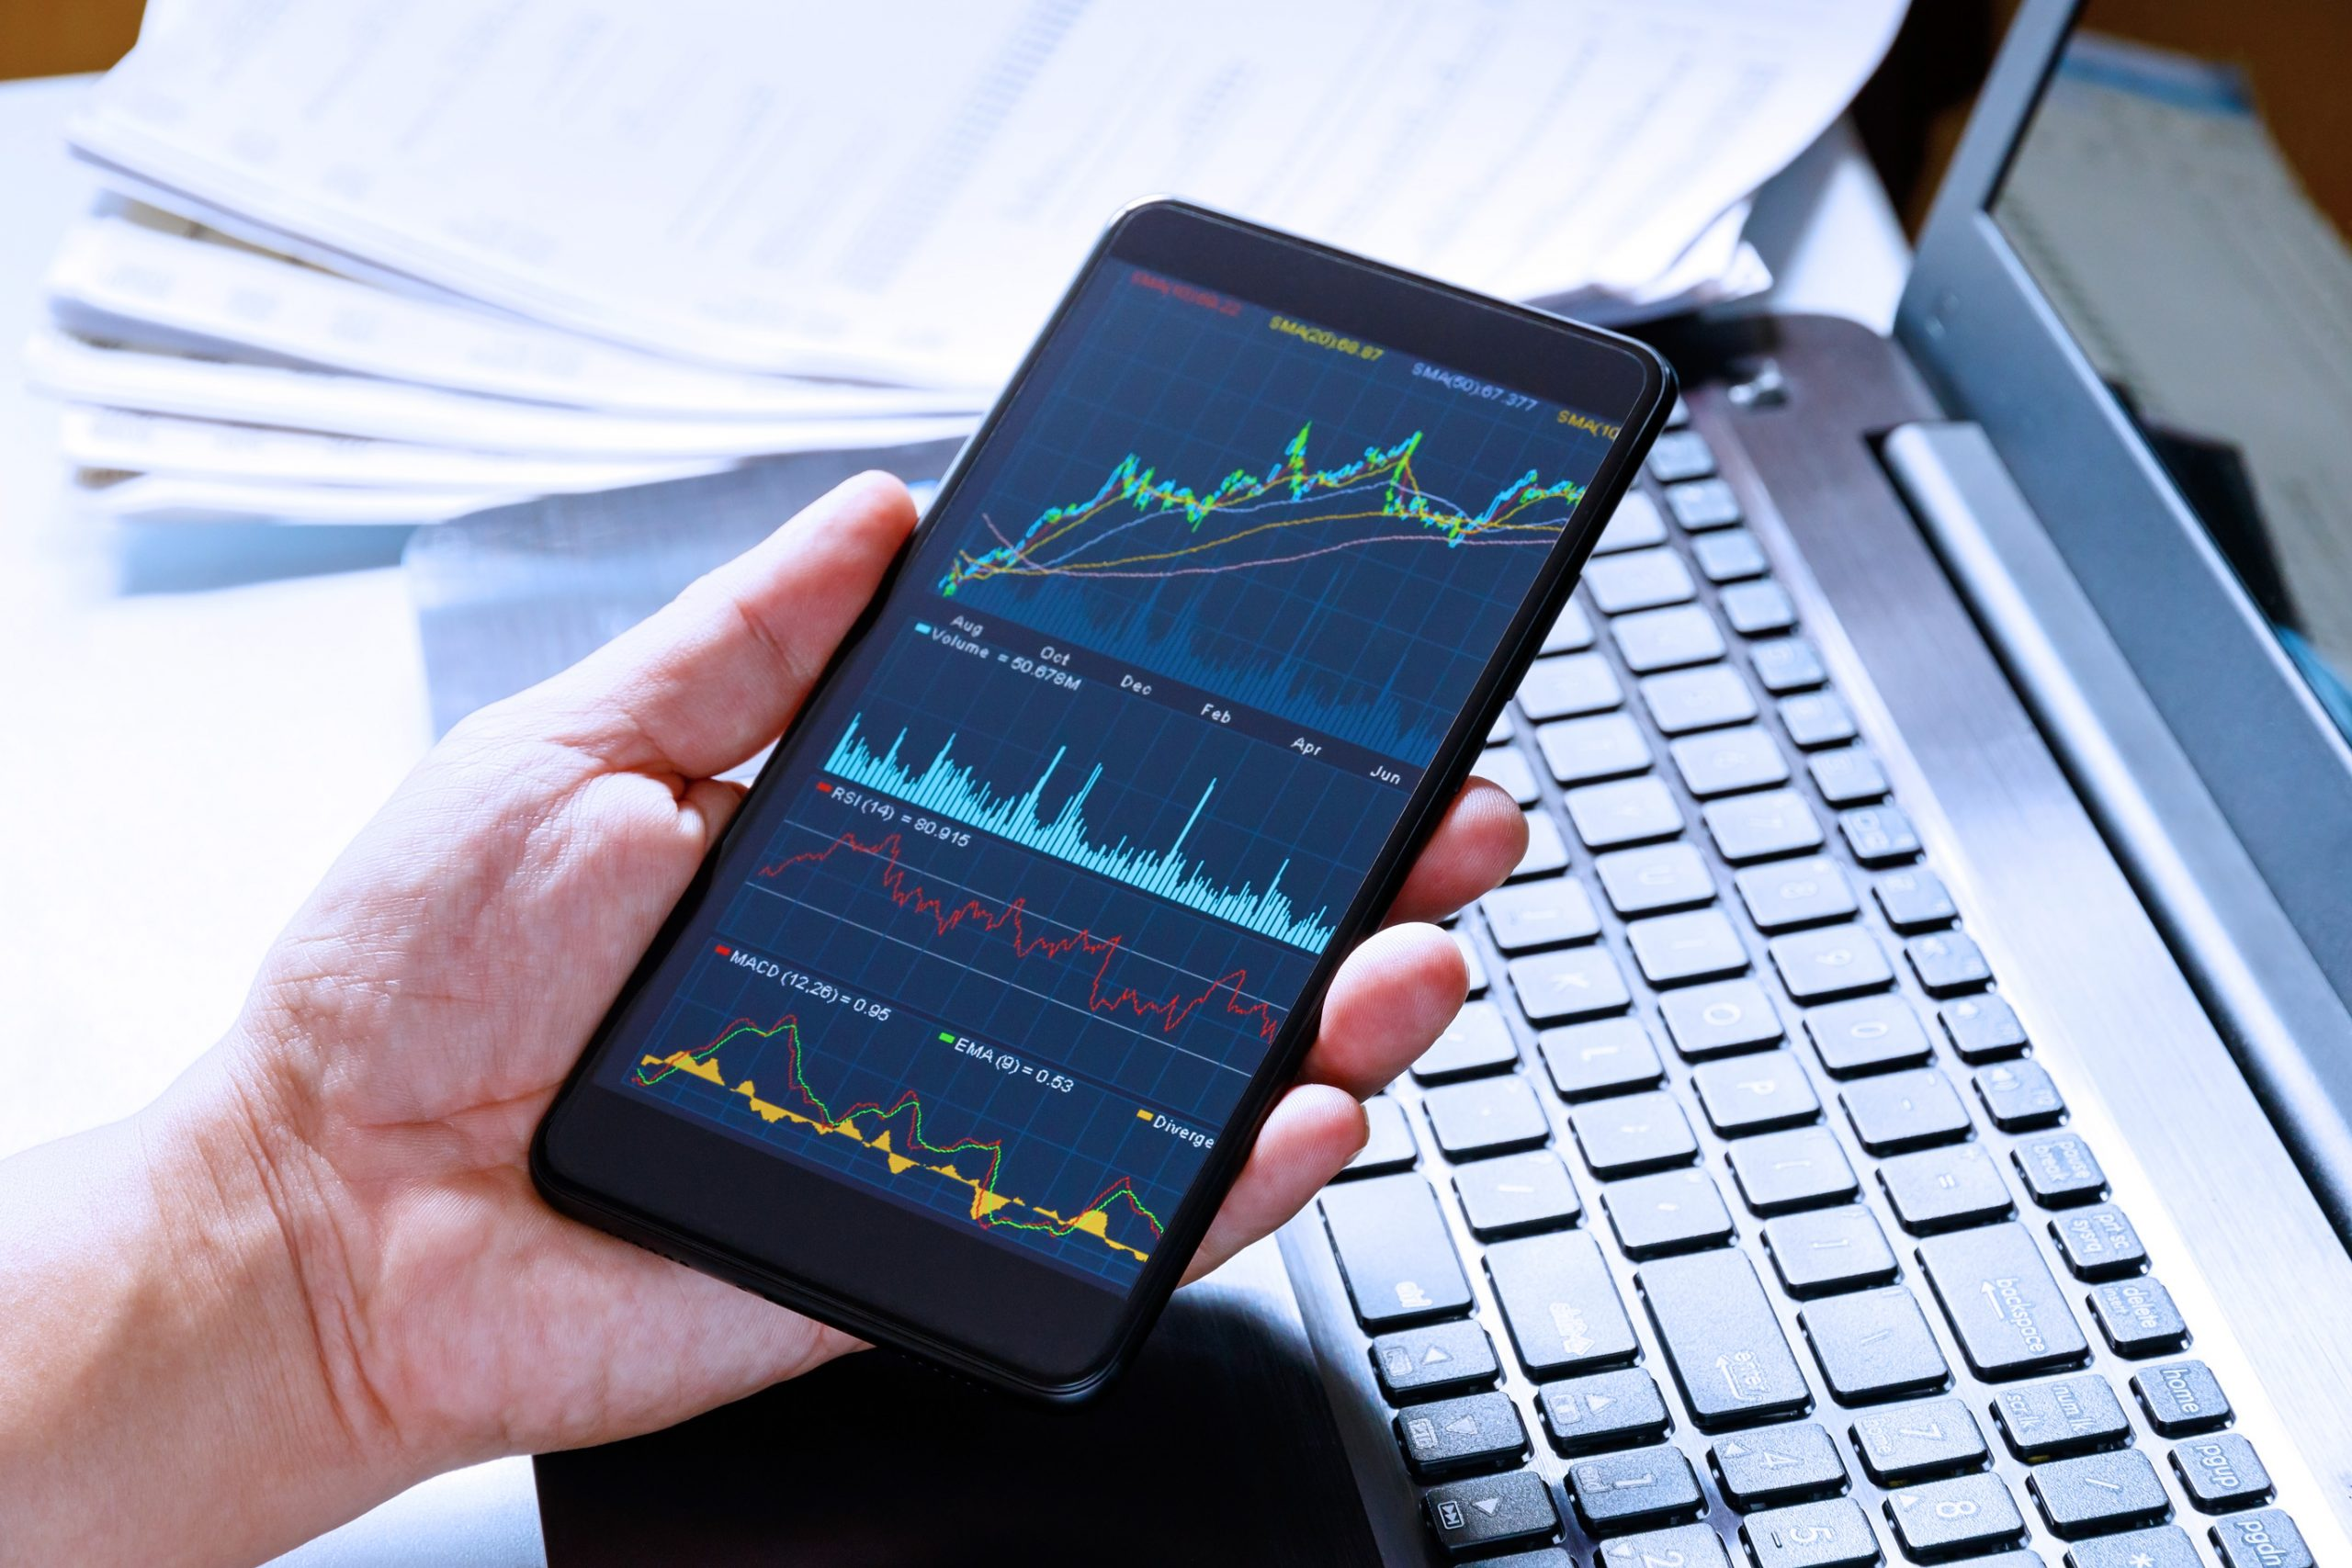 A person views various graphs on their smartphone while working on their laptop.